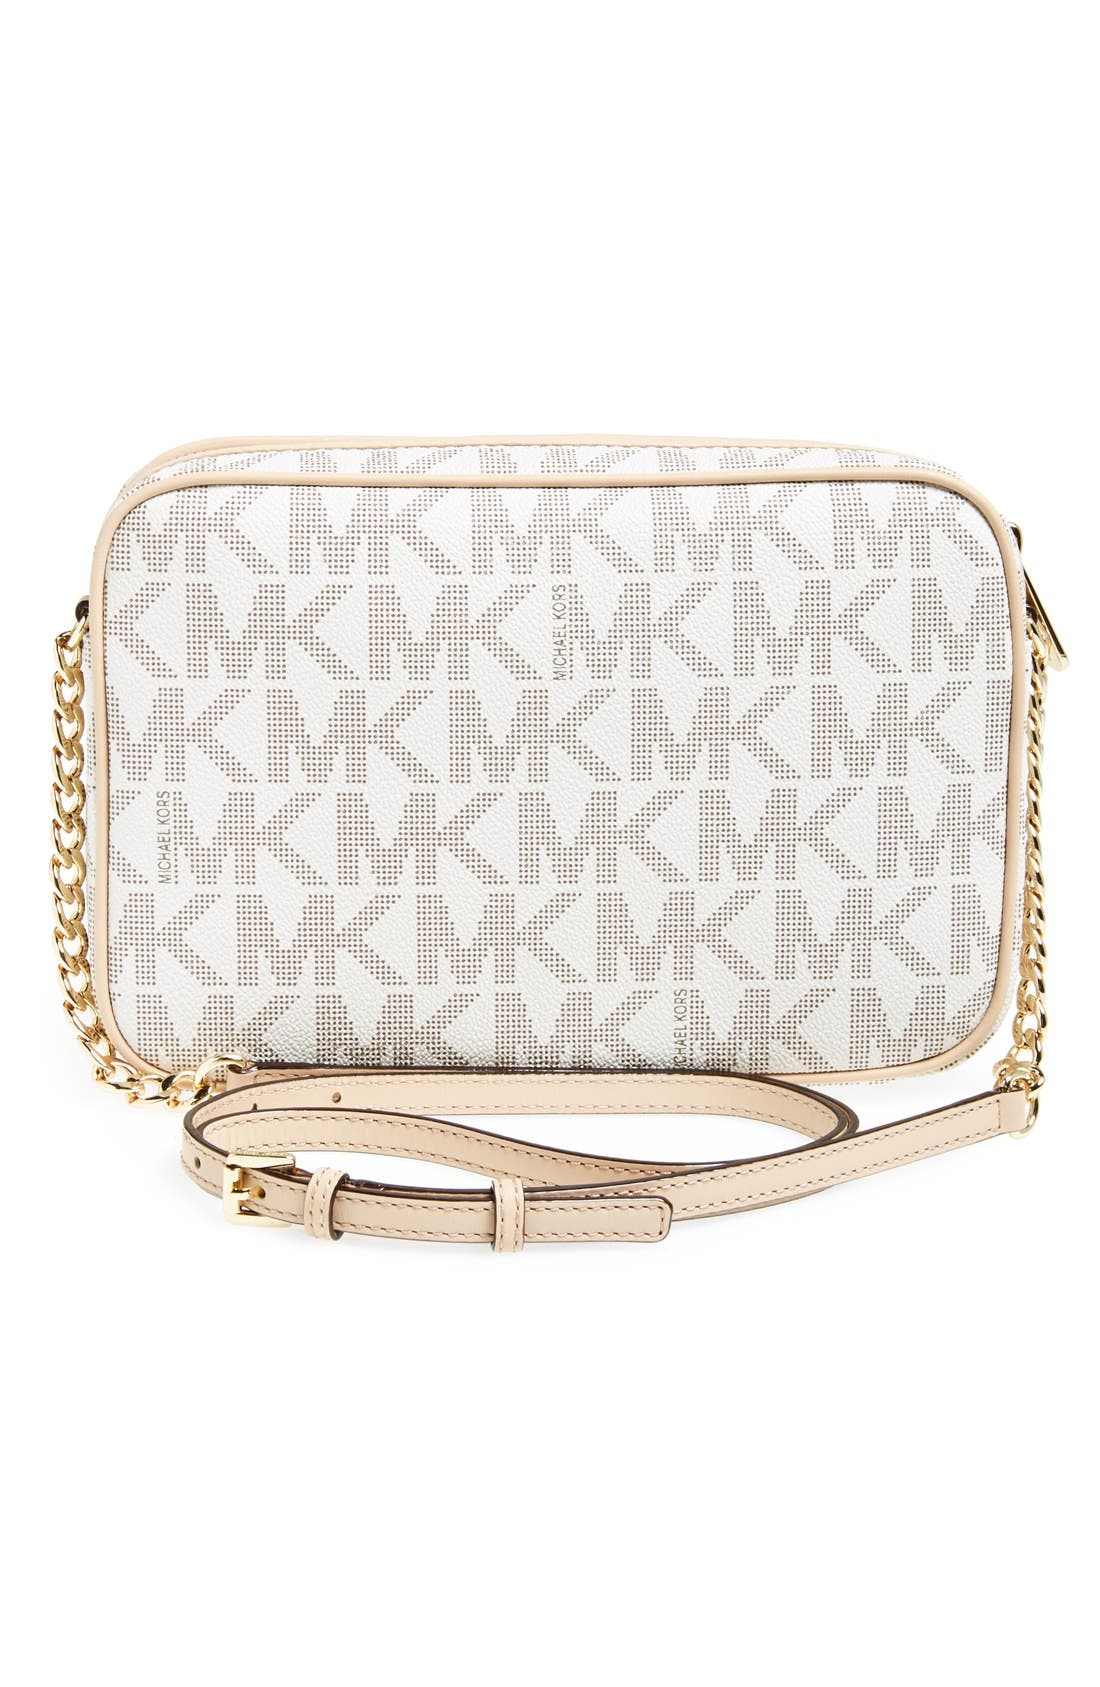 Alternate Image 3  - MICHAEL Michael Kors 'Jet Set Large' East/West Crossbody